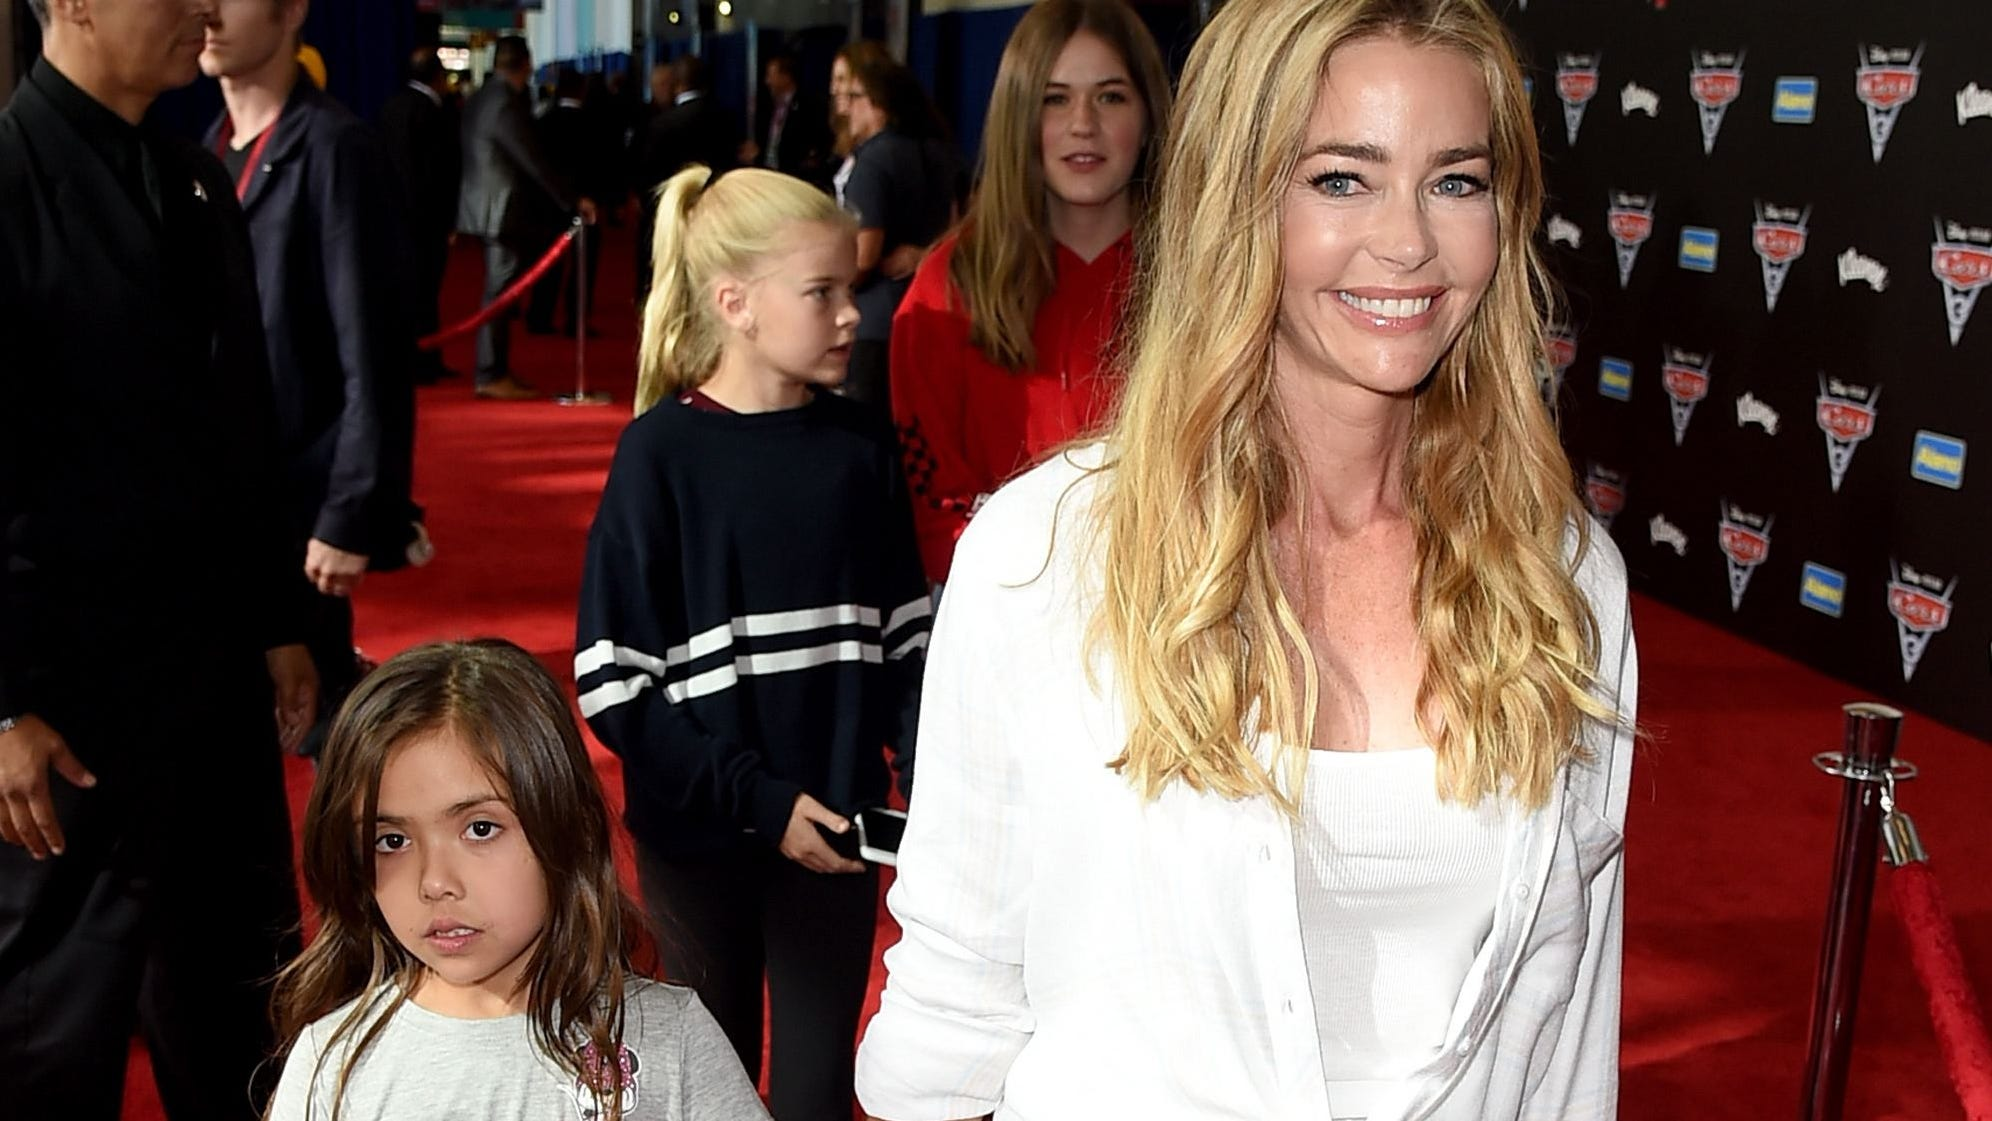 'I'm learning every day:' Denise Richards talks parenting daughter with special needs